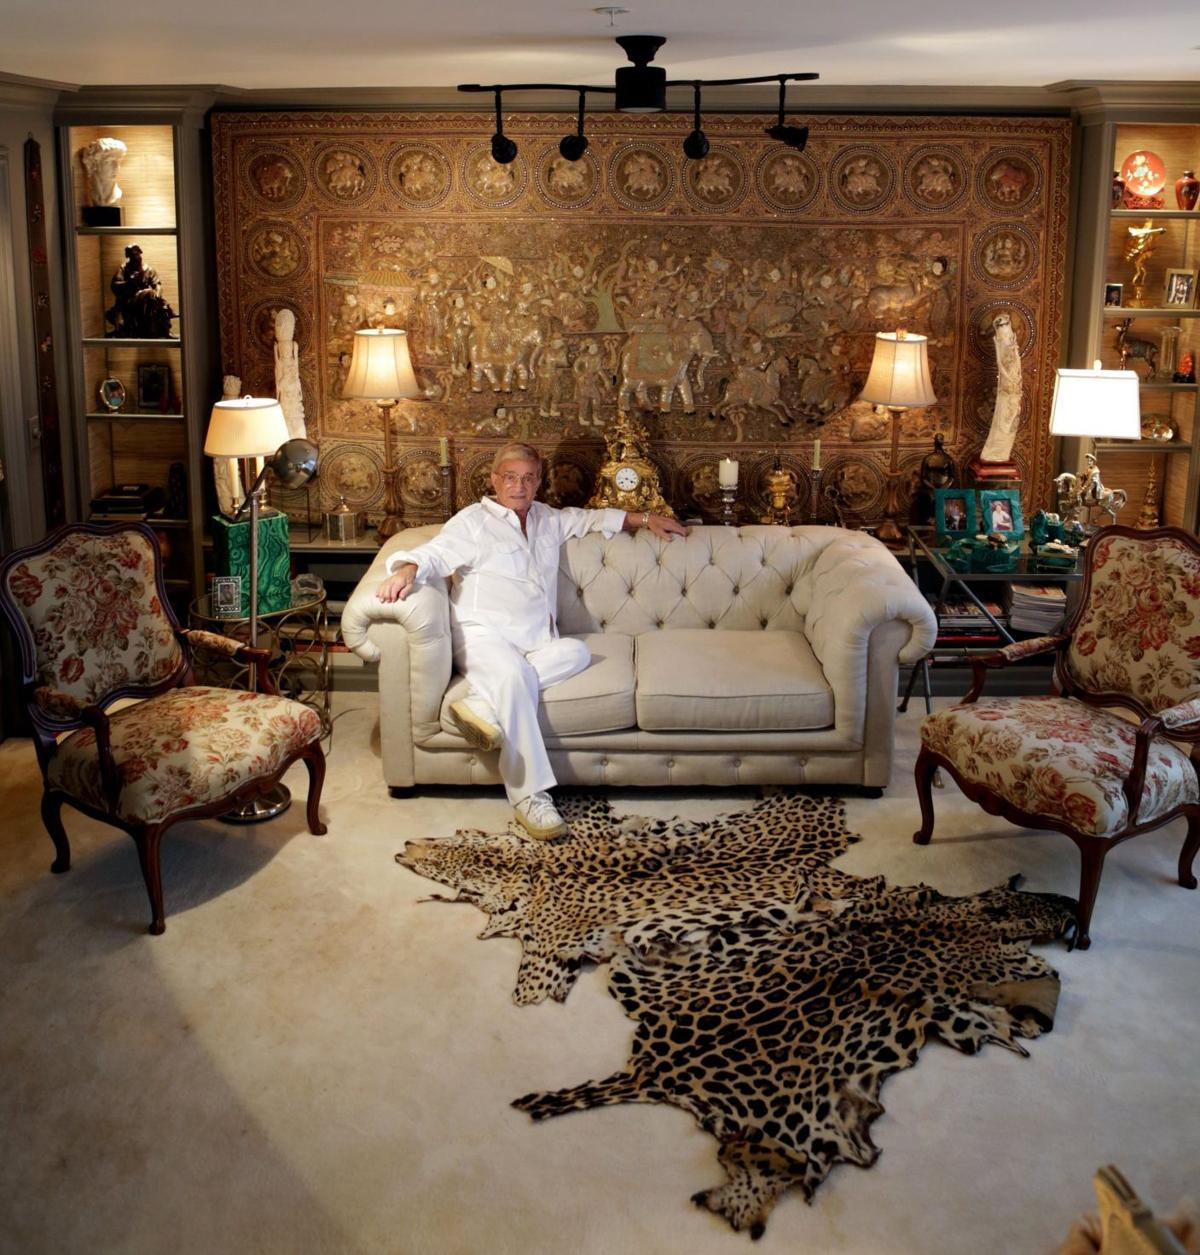 At home: 94-year-old adds elegance to Gatesworth apartment | Home ...